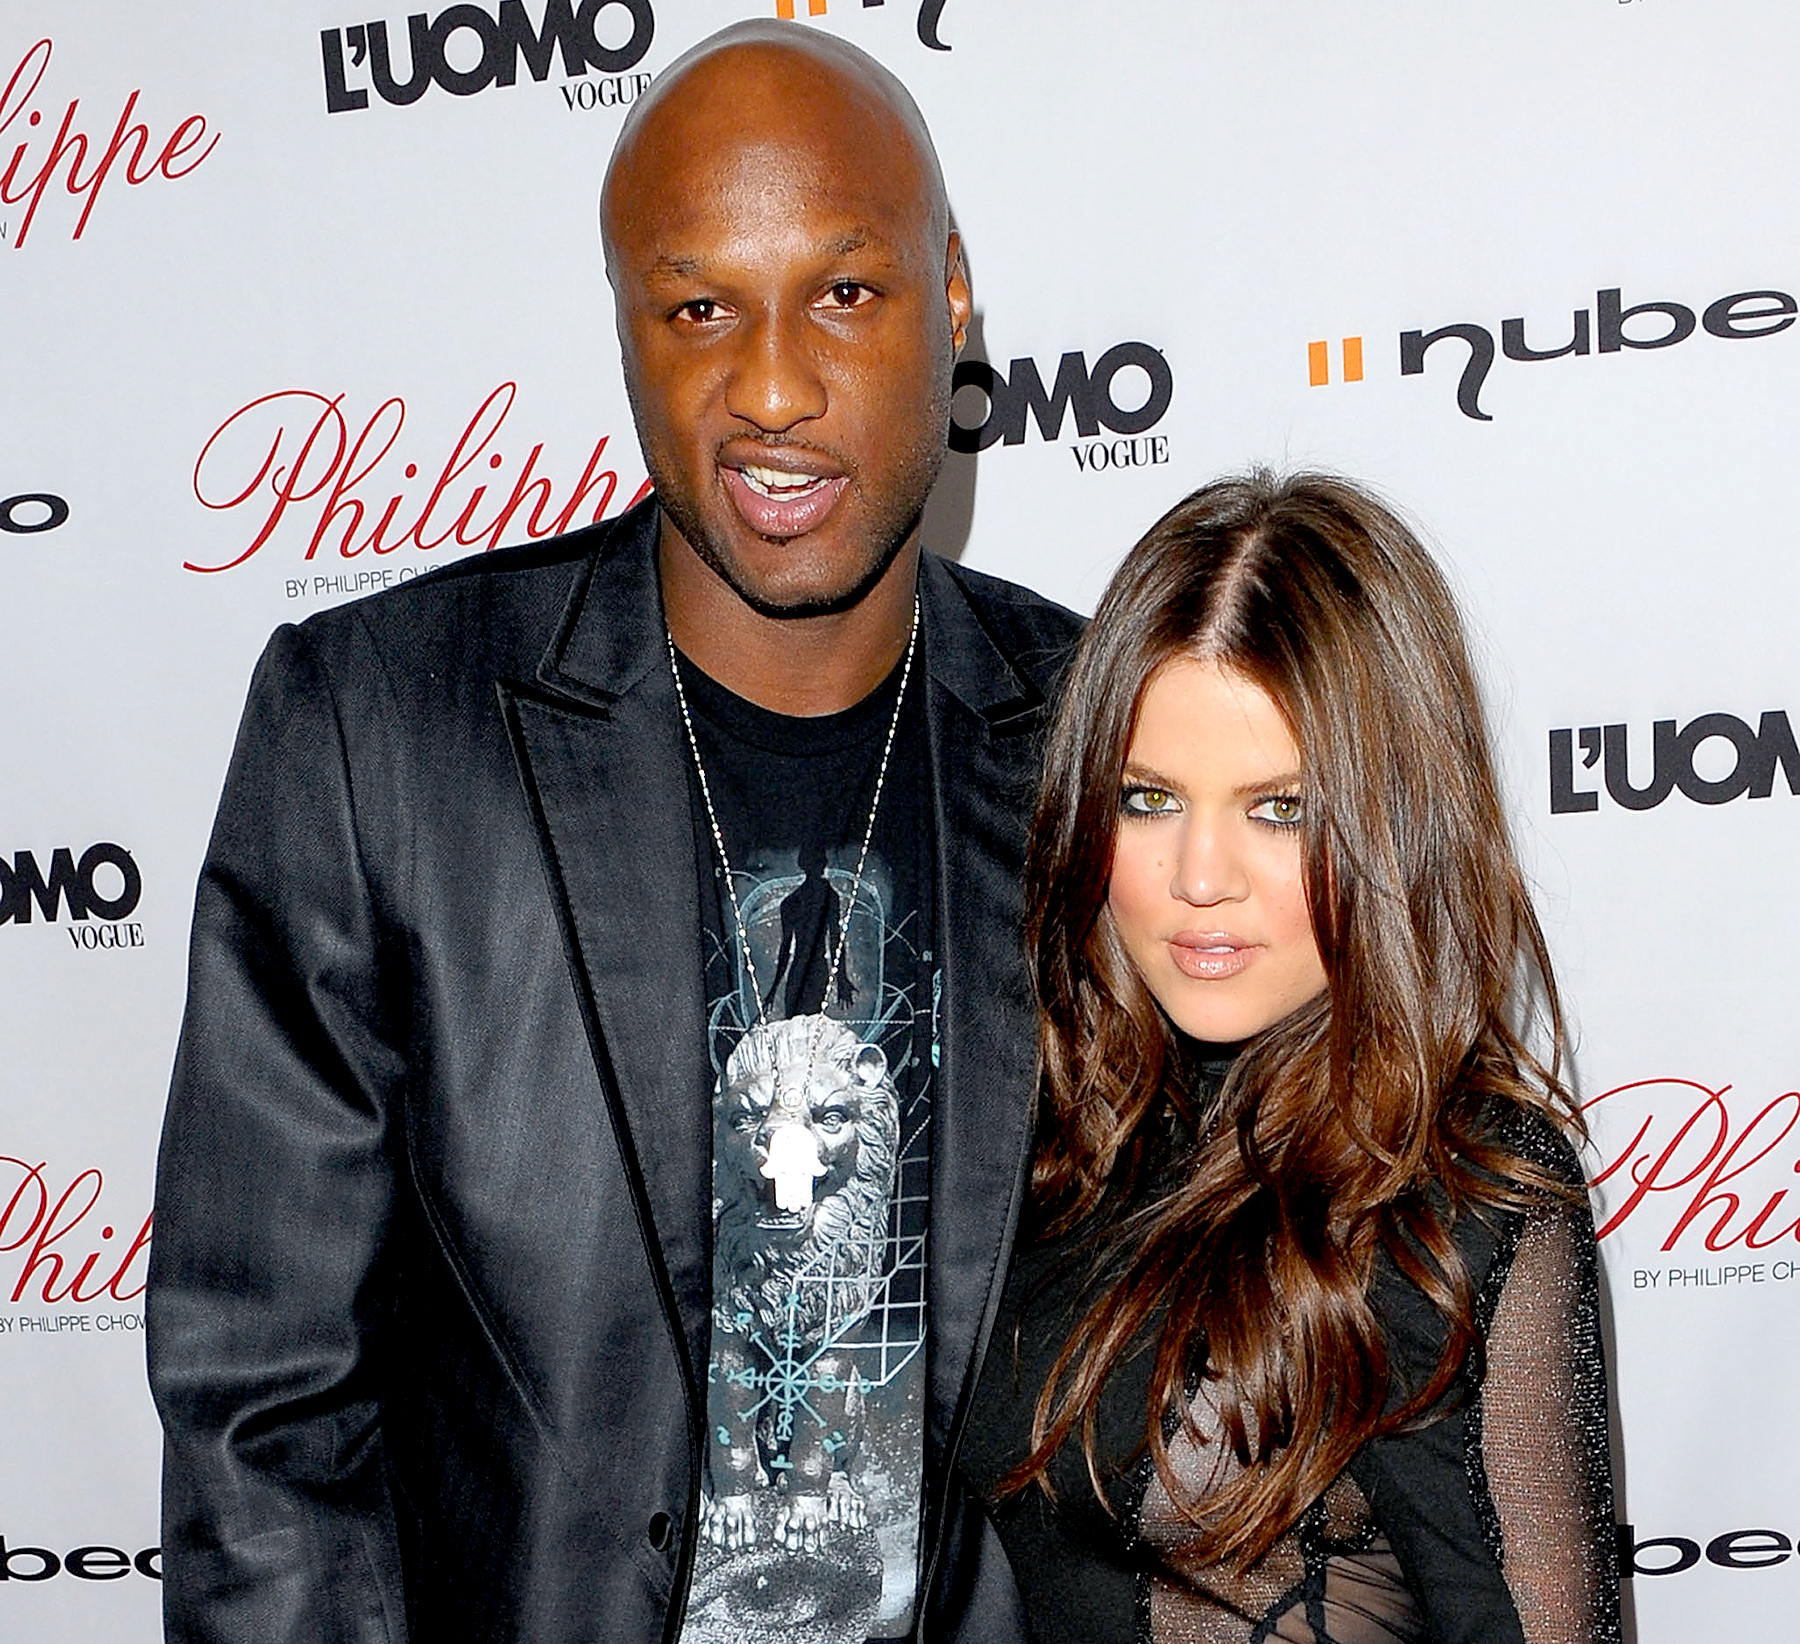 Khloé Kardashian and Lamar Odom arrive at the Philippe restaurant grand opening in West Hollywood on October 12, 2009.